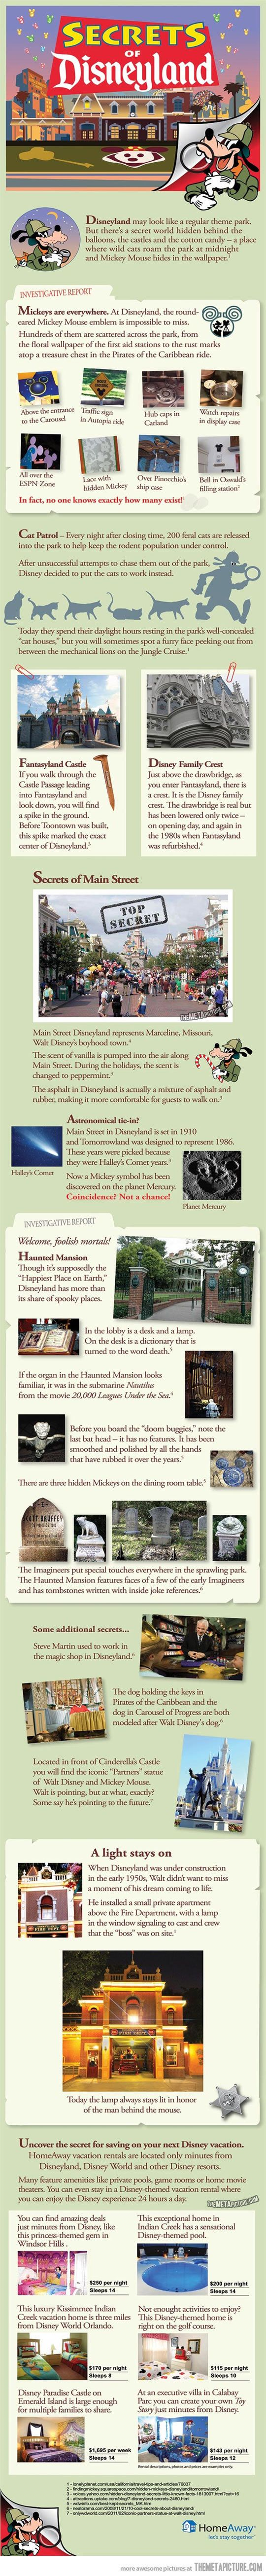 Cool Secrets of Disneyland…this is awesome! They remember Walt in such great ways!